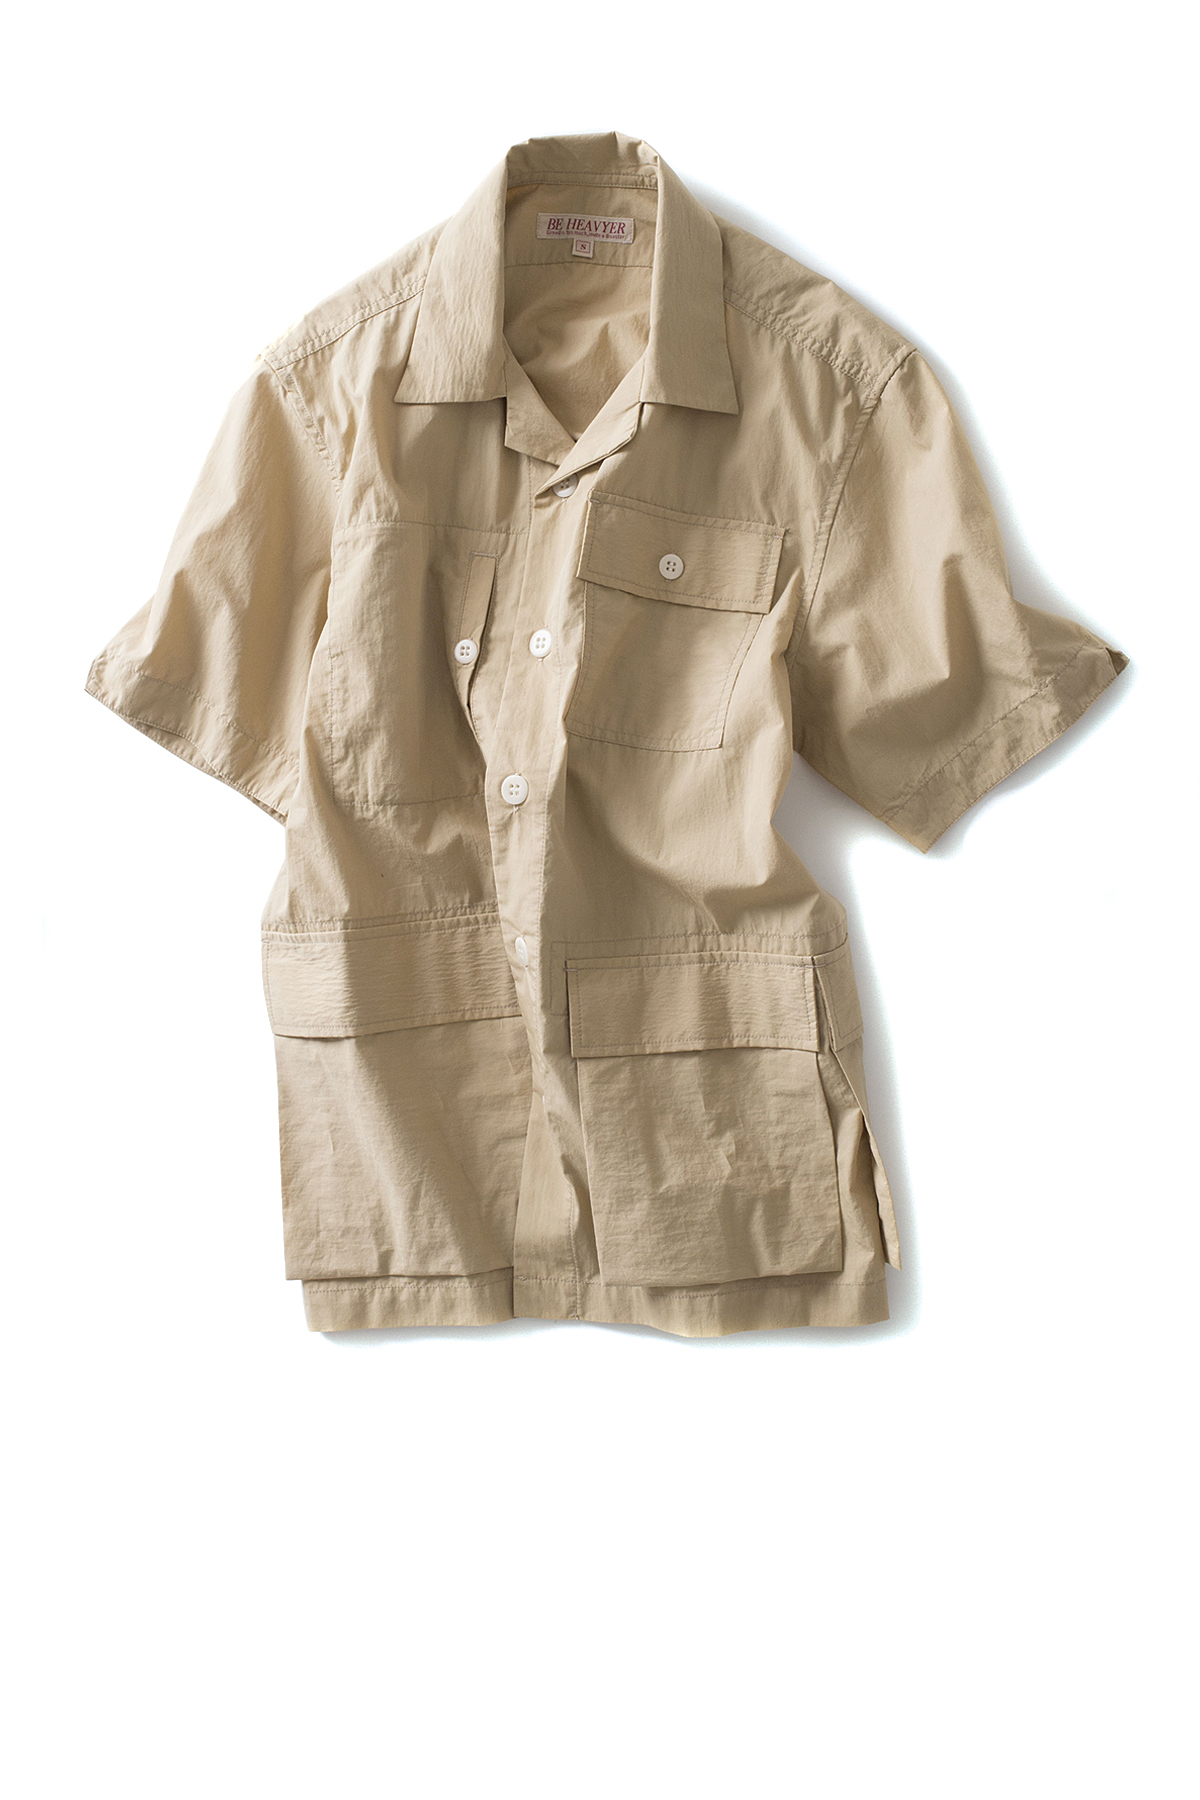 Be Heavyer : BDU Half Jacket (Beige)